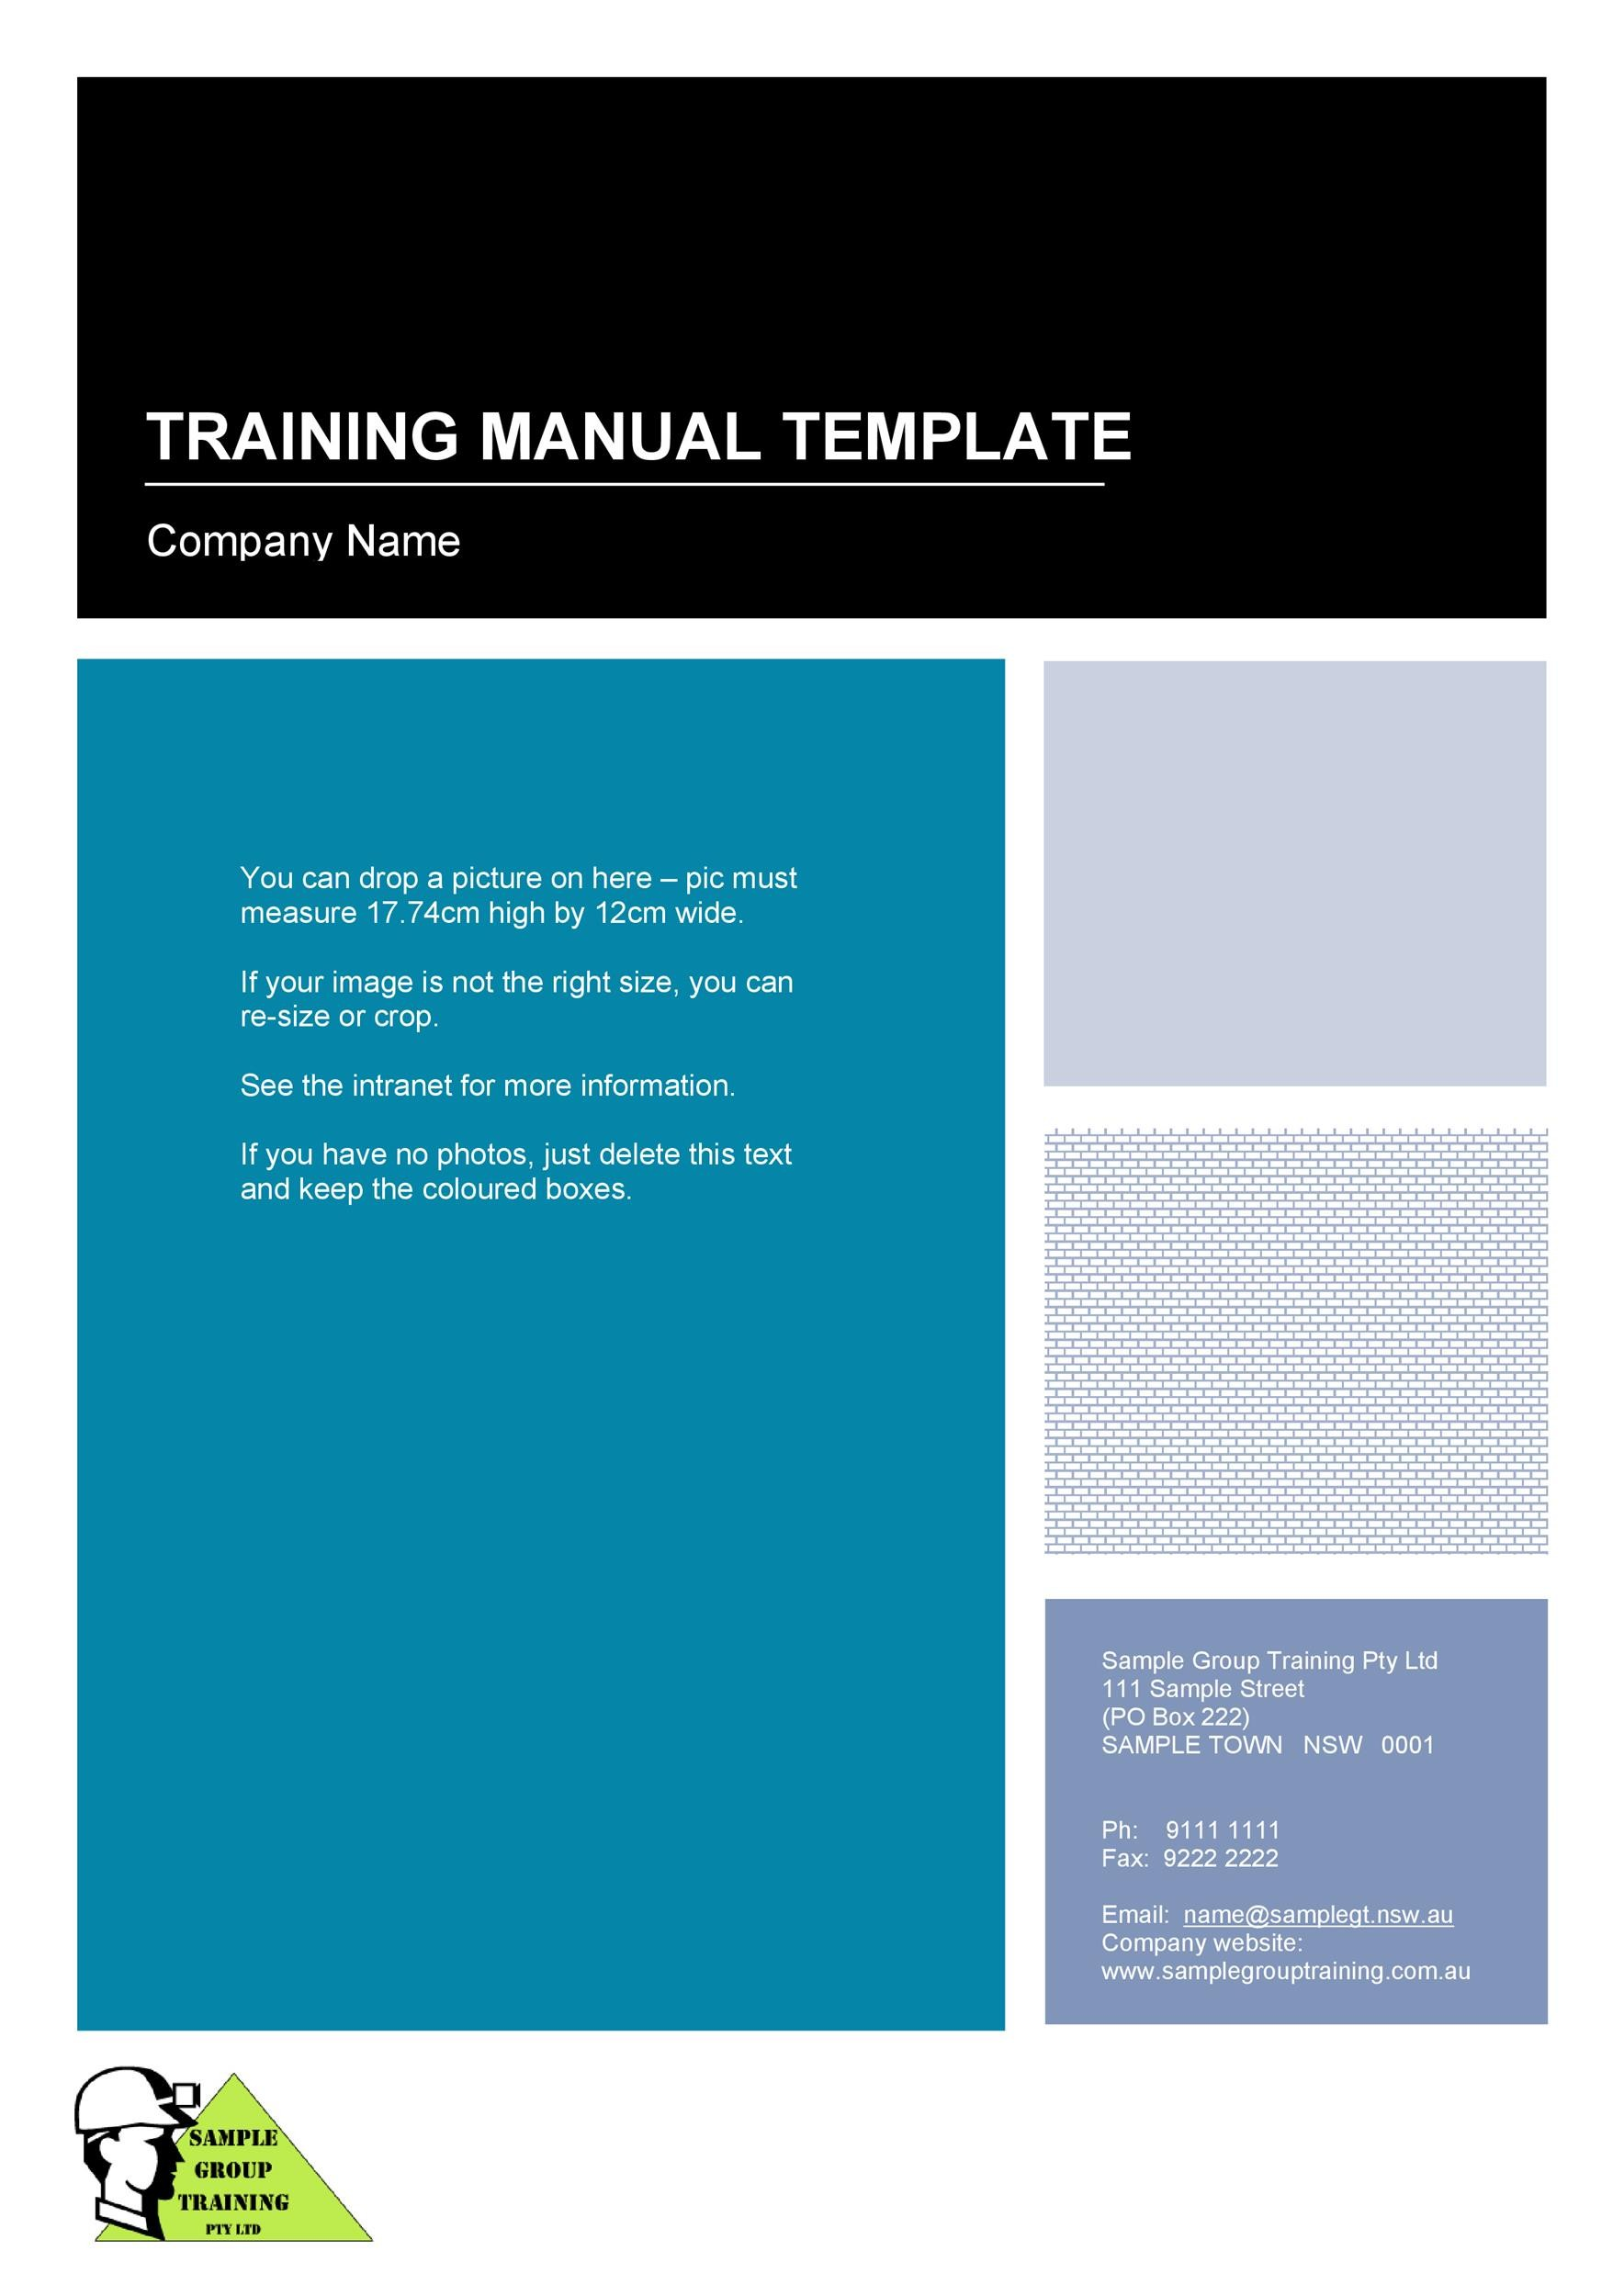 Free training manual template 01